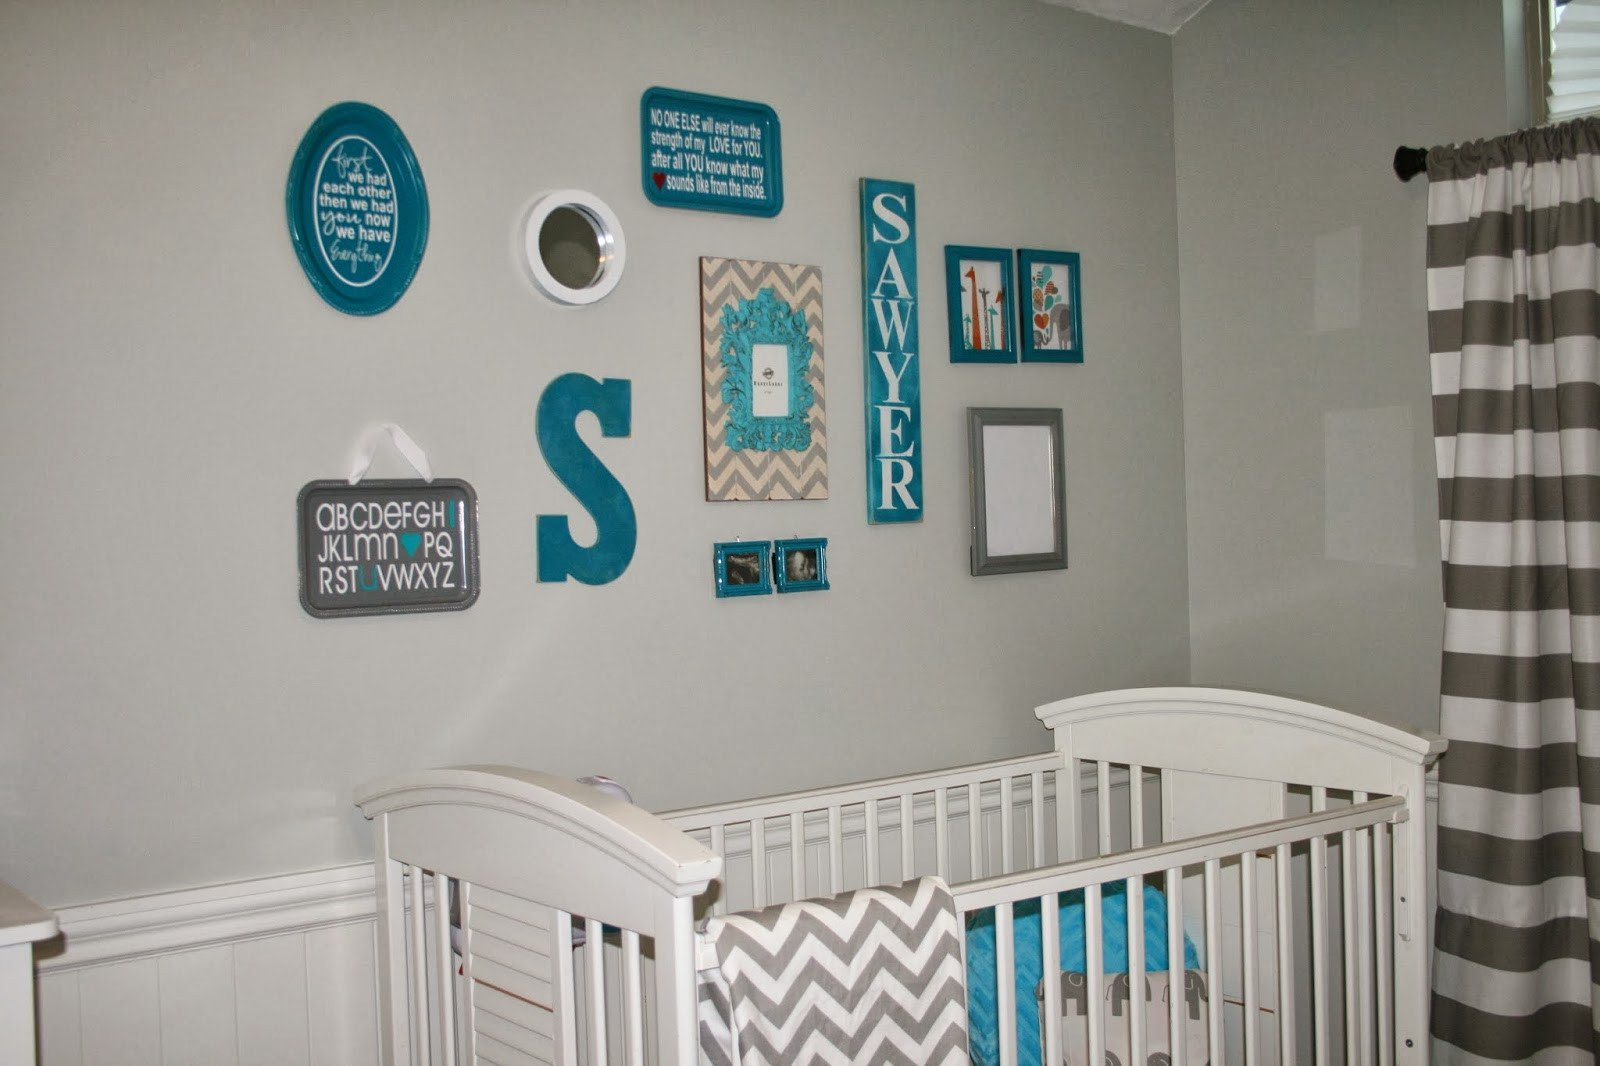 Baby Room Wall Decor Ideas Awesome Creative Juices Baby Room Decor and Collage Wall